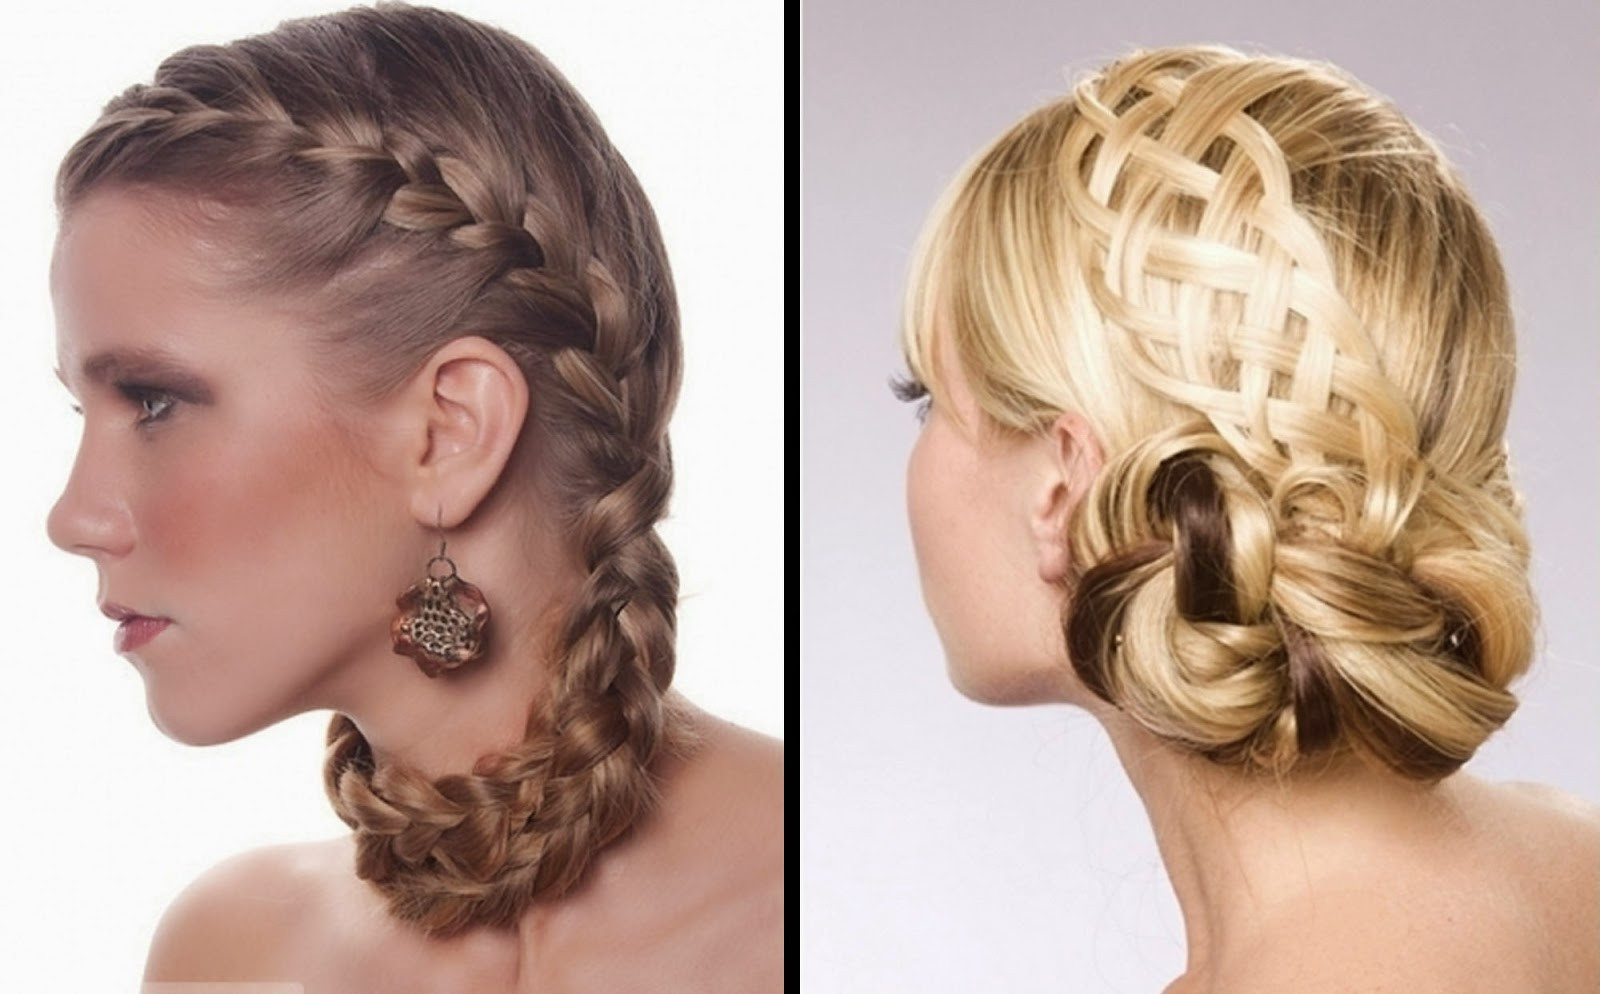 Best ideas about Prom Haircuts . Save or Pin 100 Delightful Prom Hairstyles Ideas Haircuts Now.